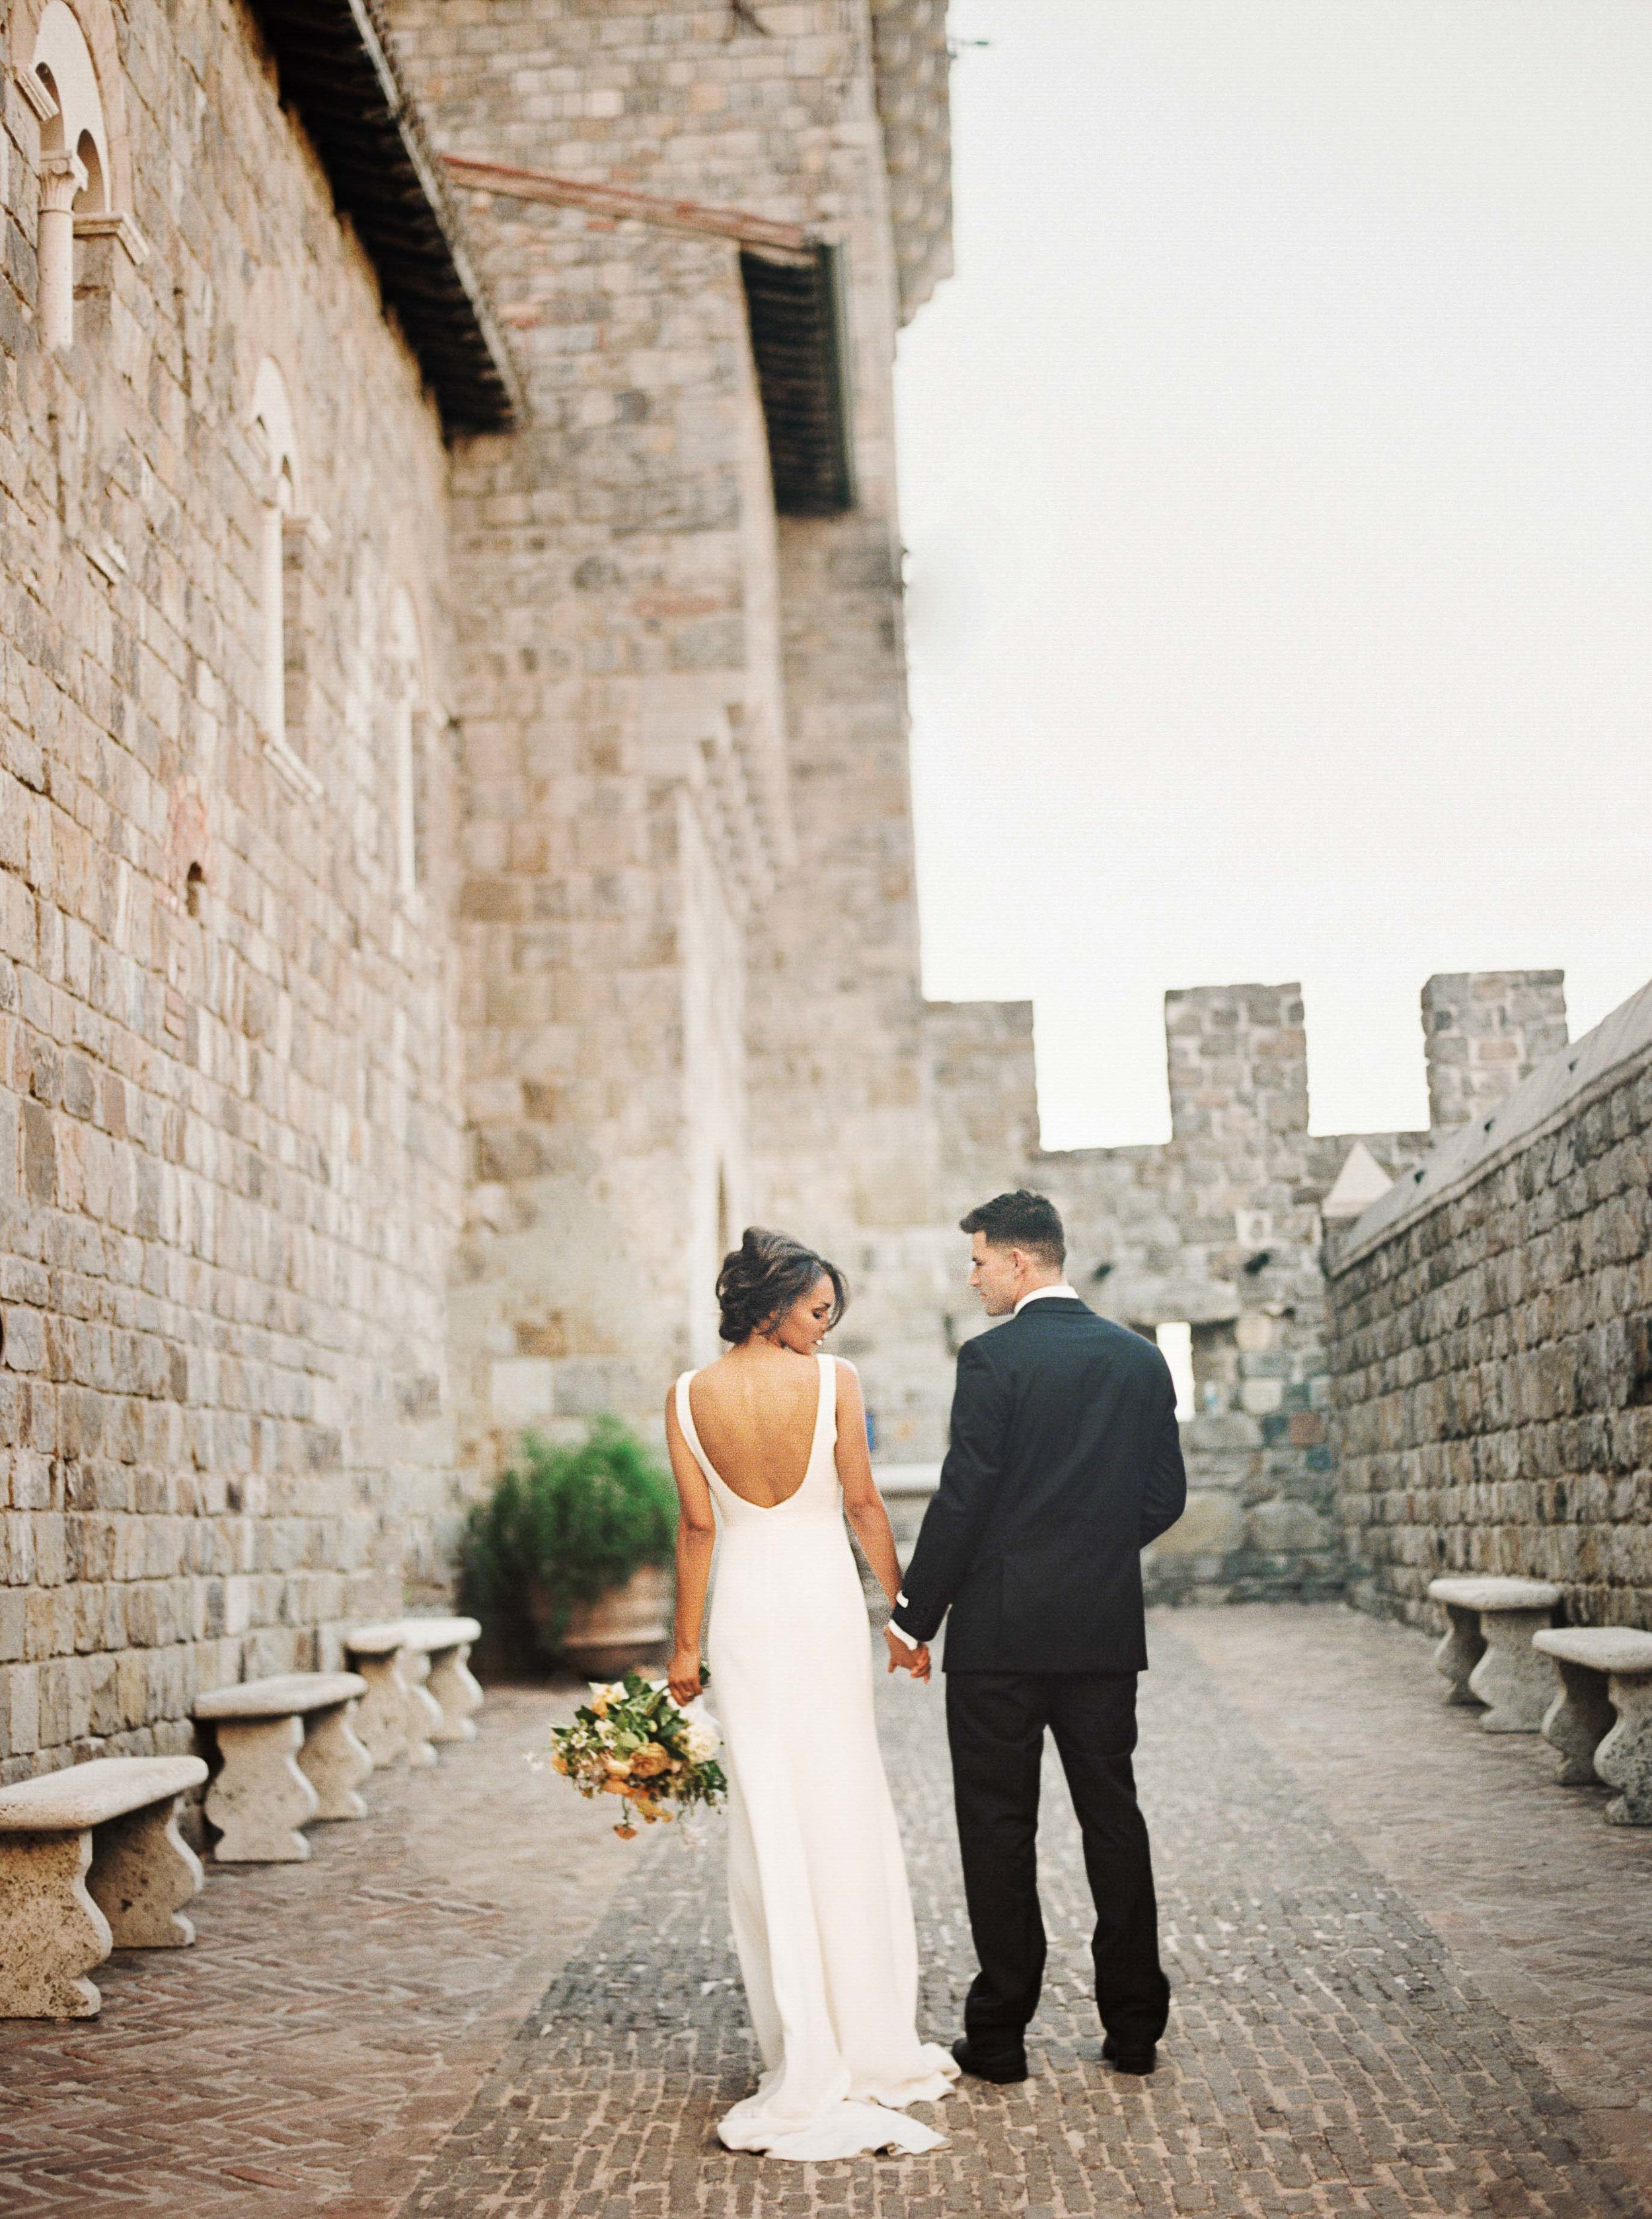 041napa_wedding_photographer_and_videographer_destination_and_elopement_photography.jpg